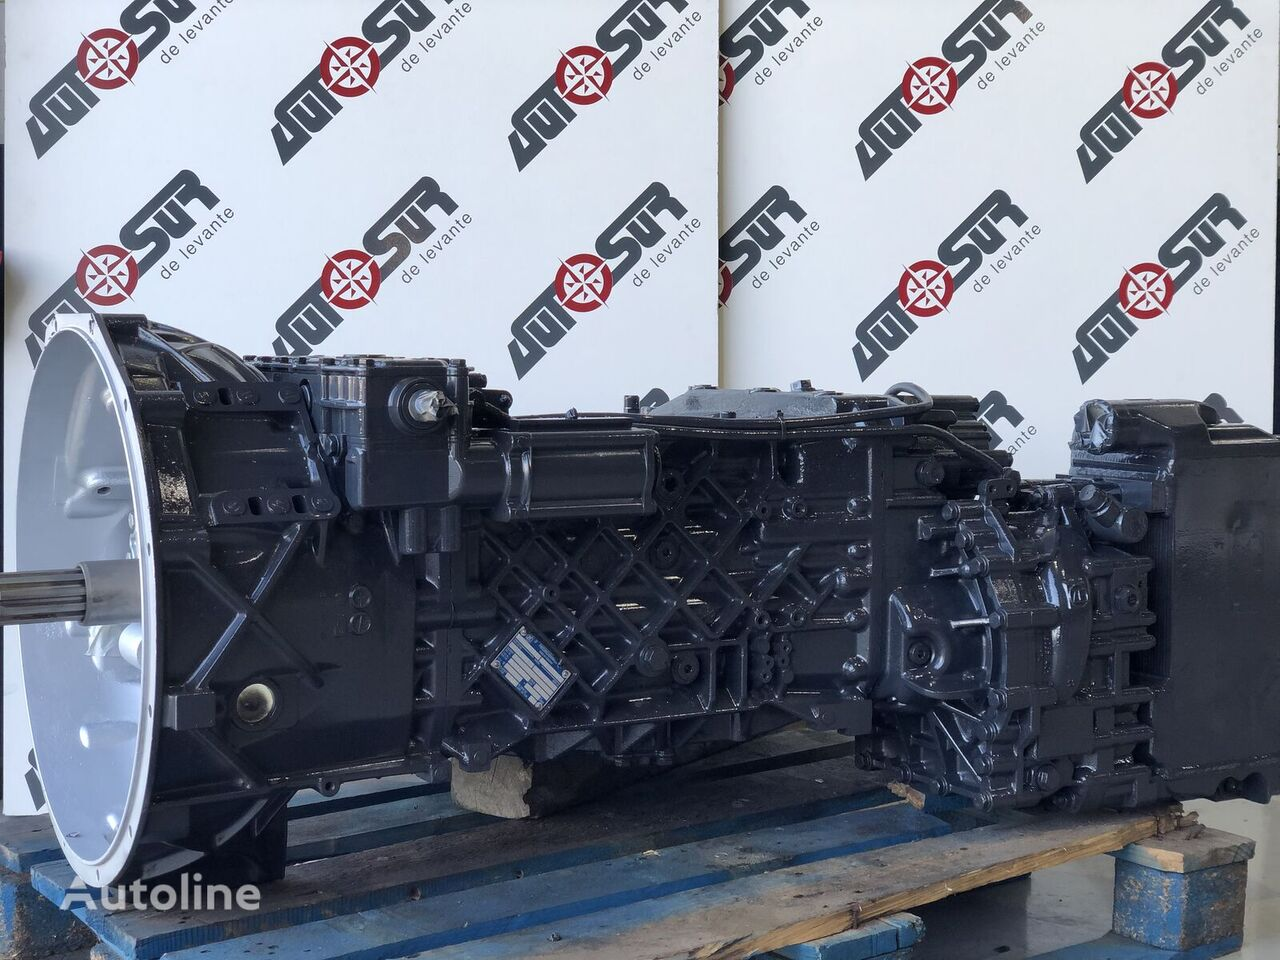 ZF 1316046151 (8869925) gearbox for truck